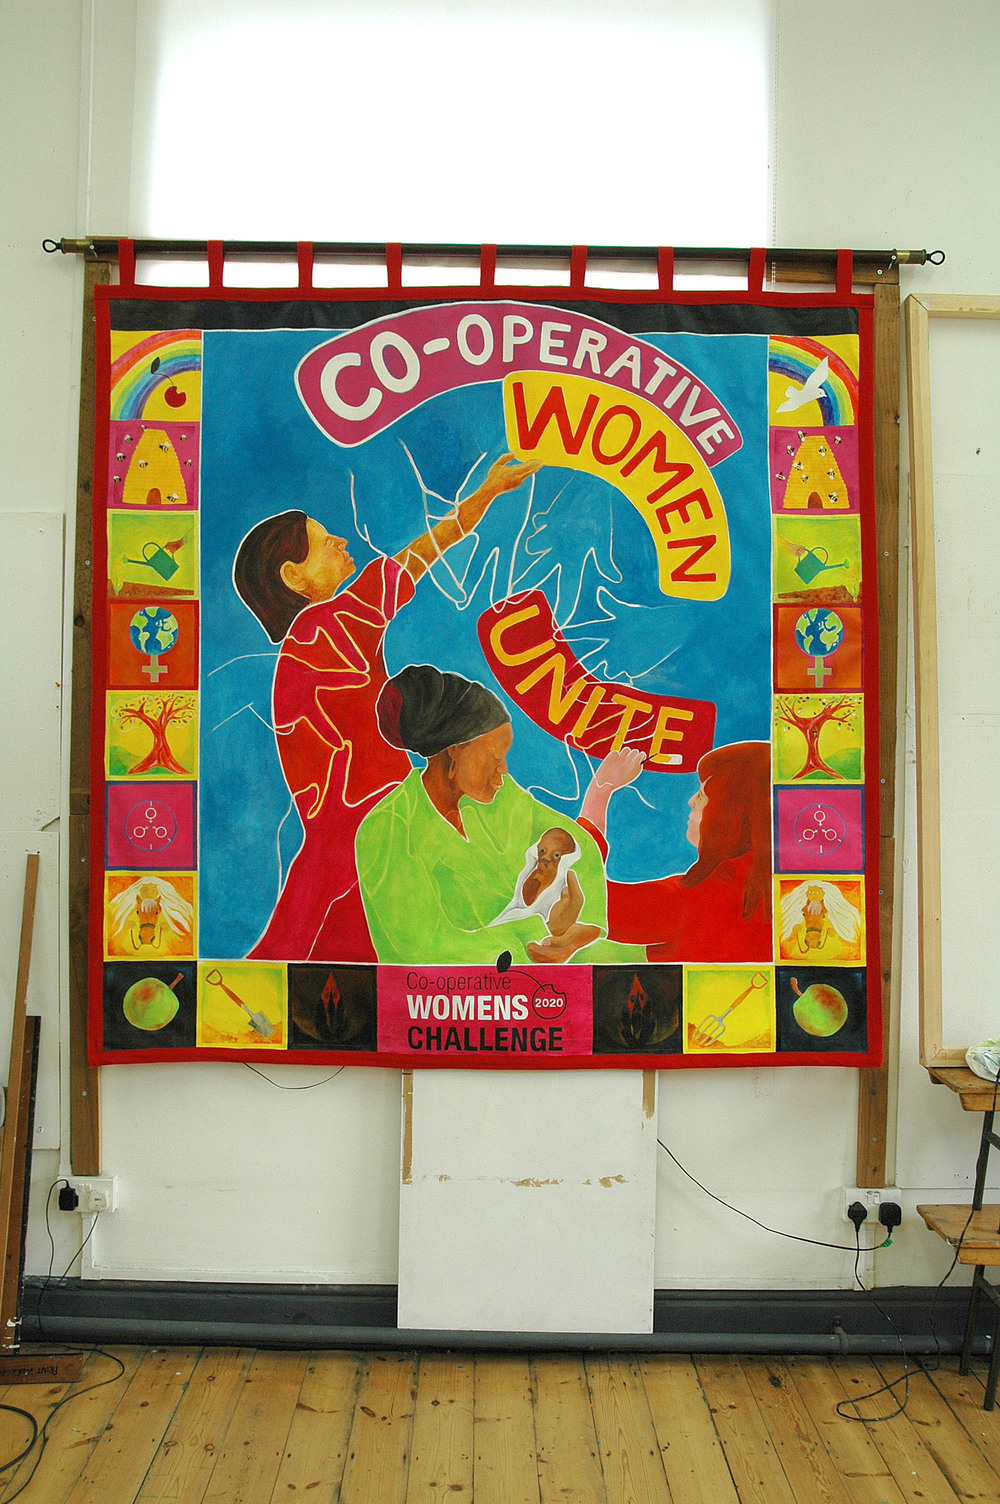 Co-operative Womens Banner